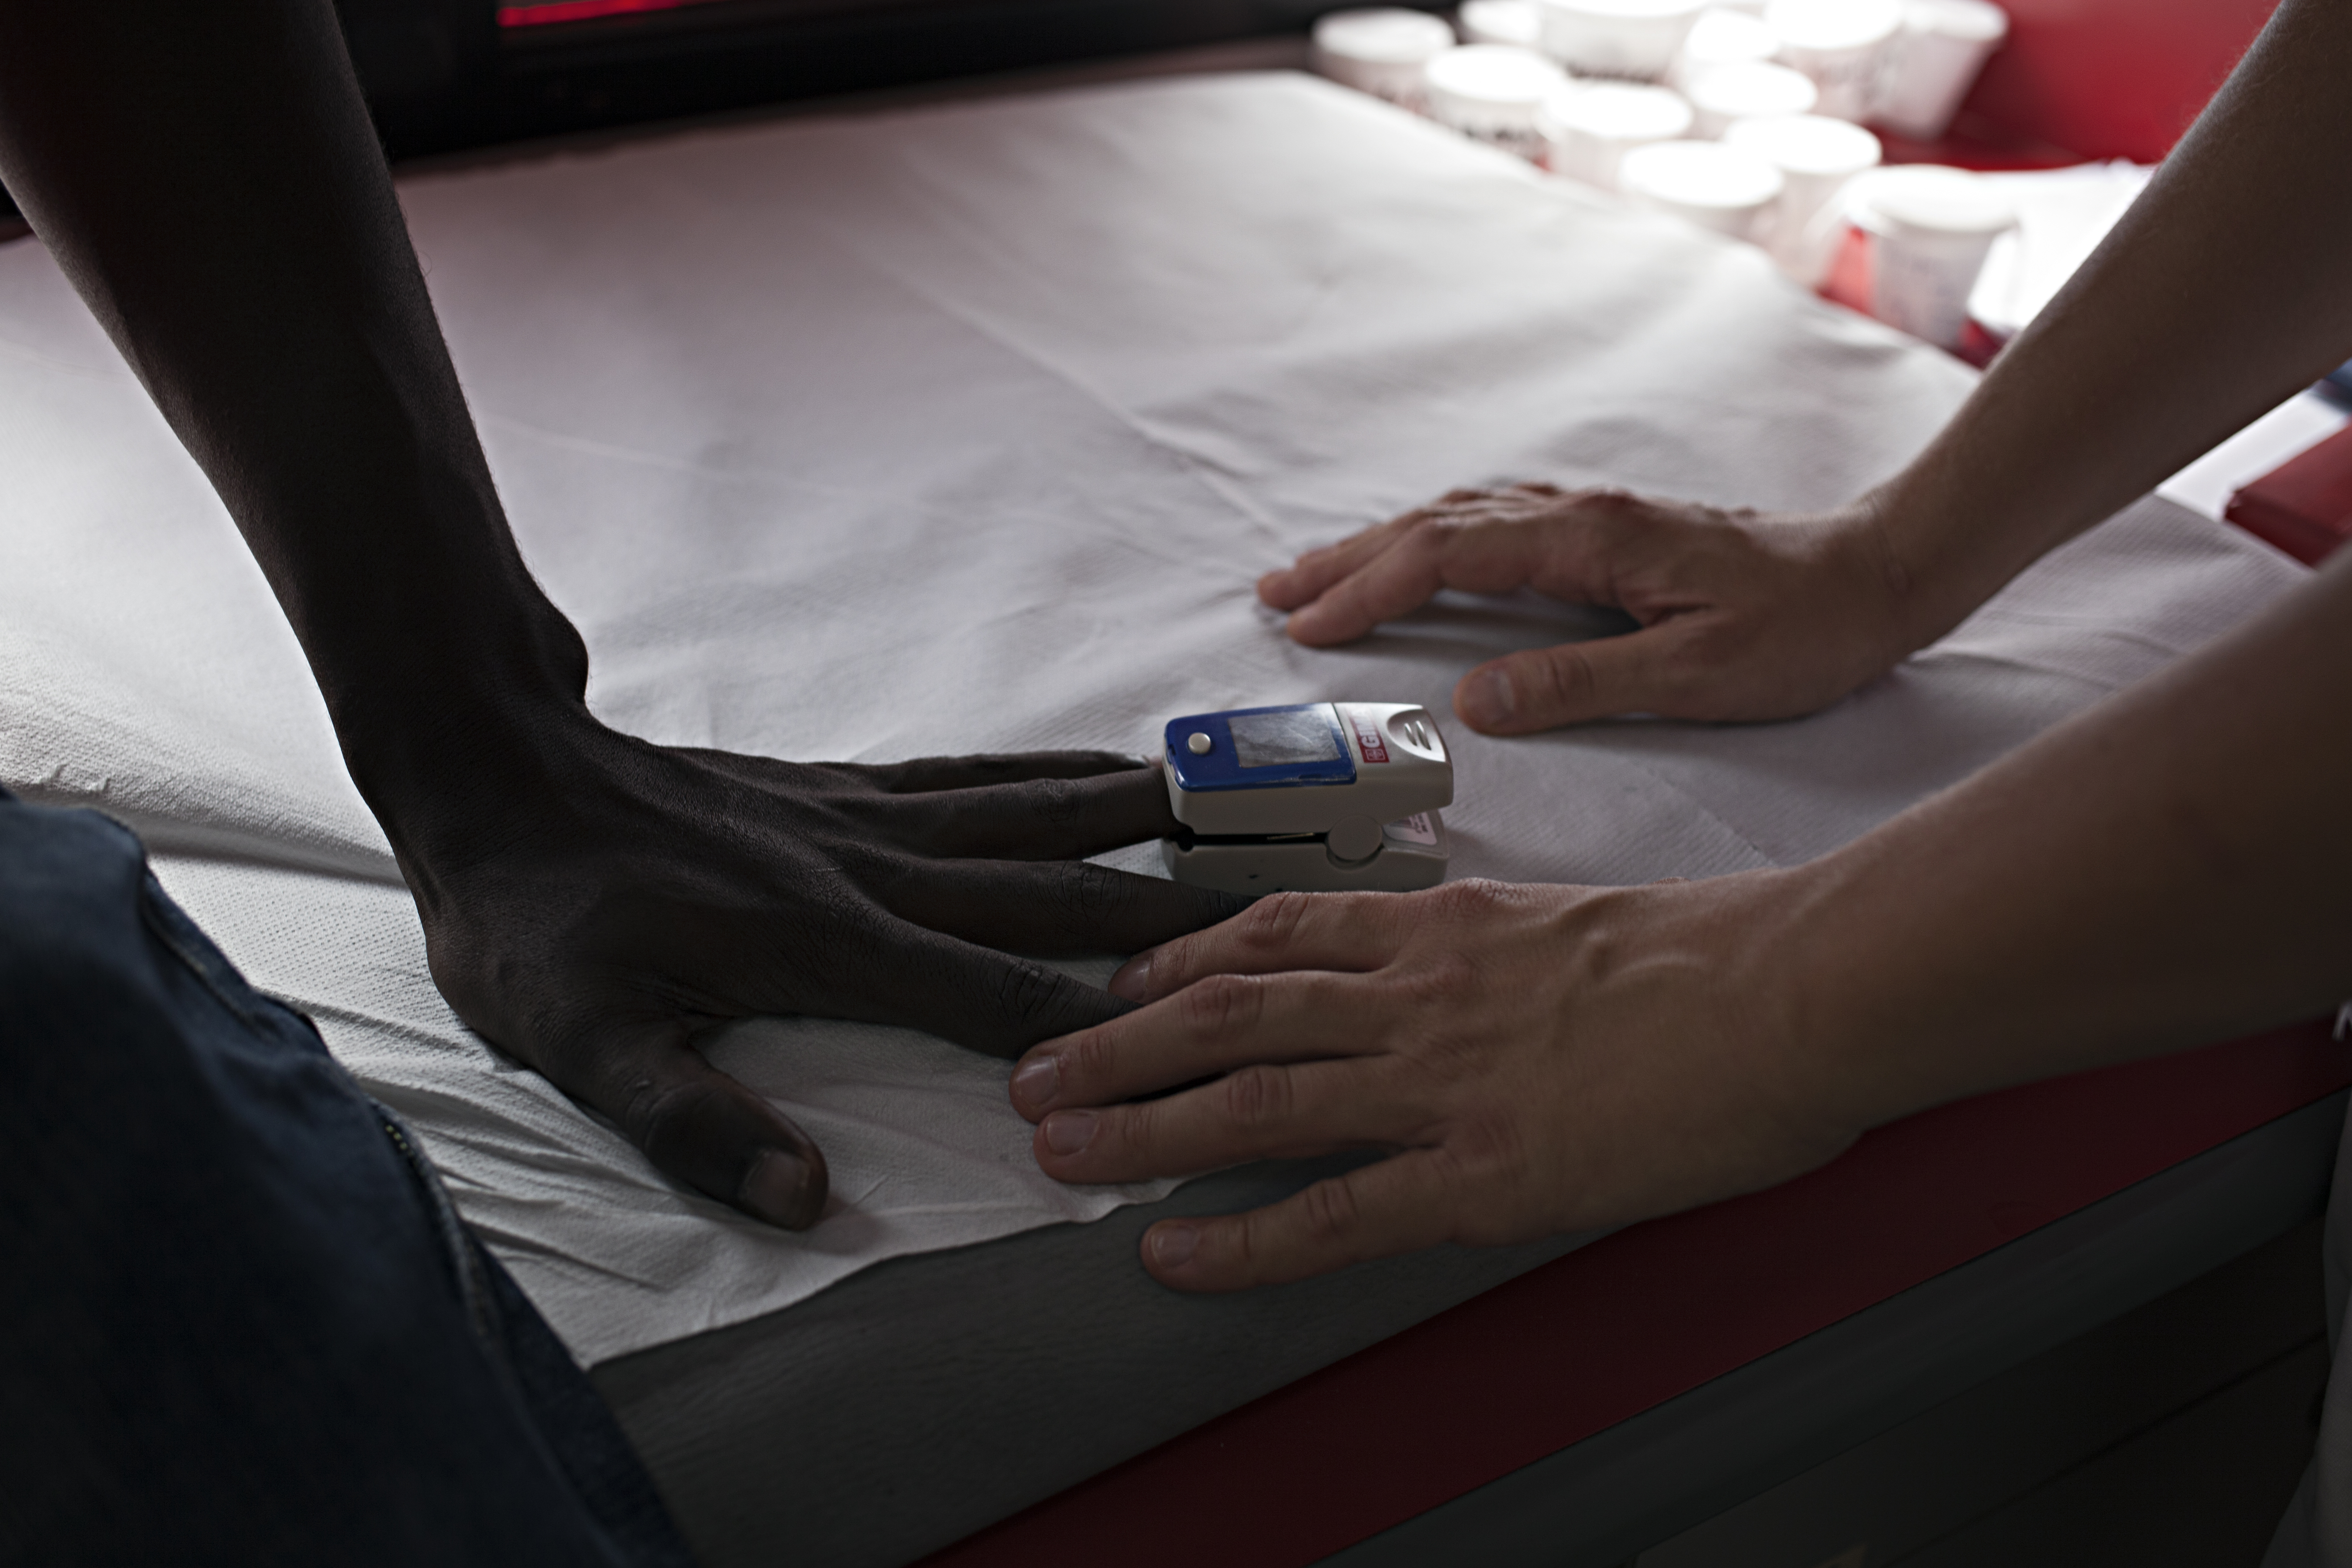 The hand of a patient and that of a member of EMERGENCY staff